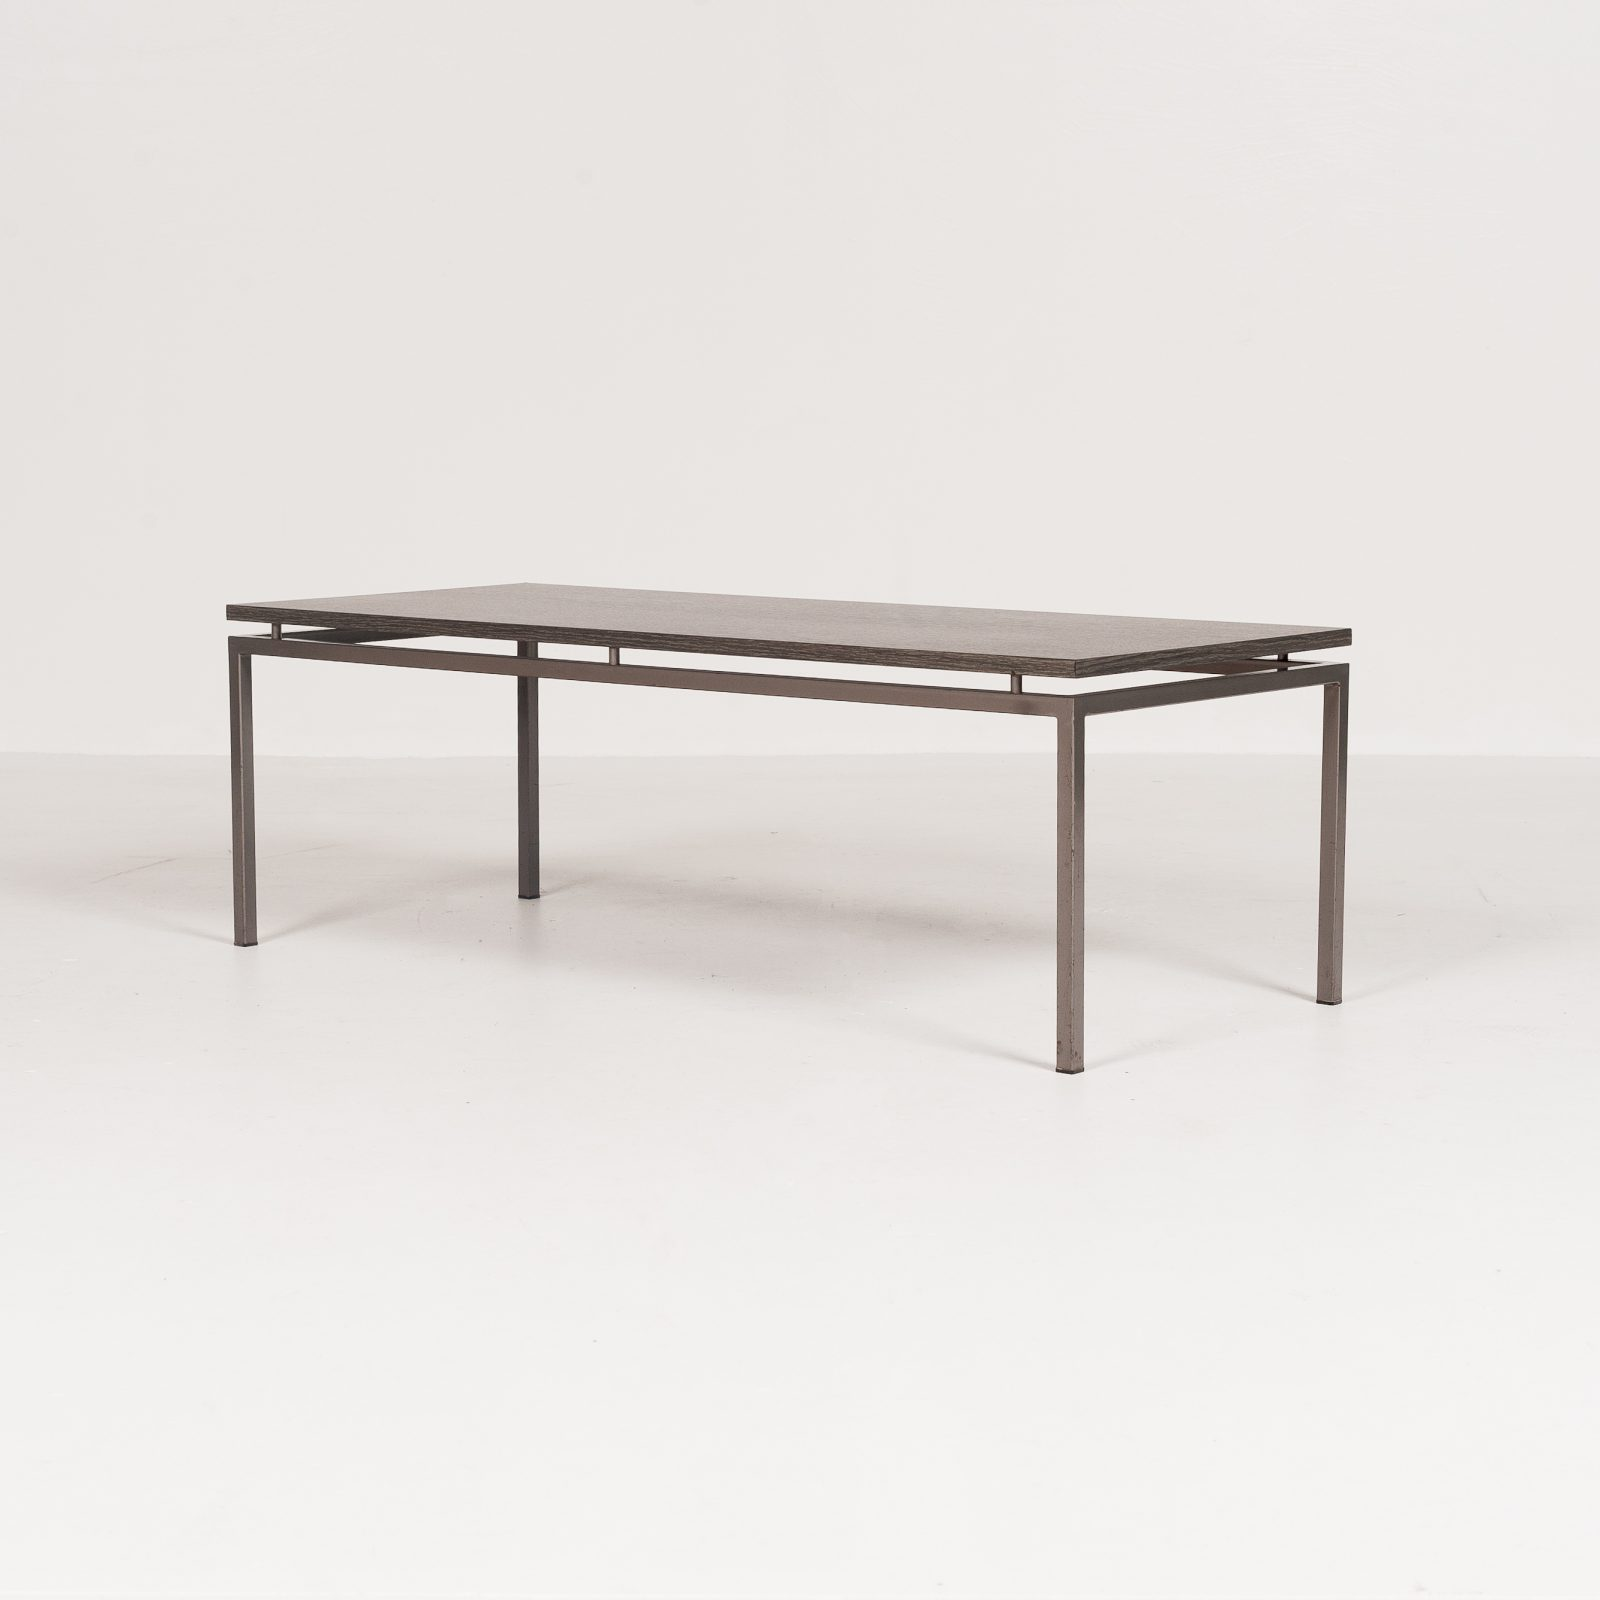 Coffee Table By Rob Parry For Gelderland, 1960s, The Netherlands 4